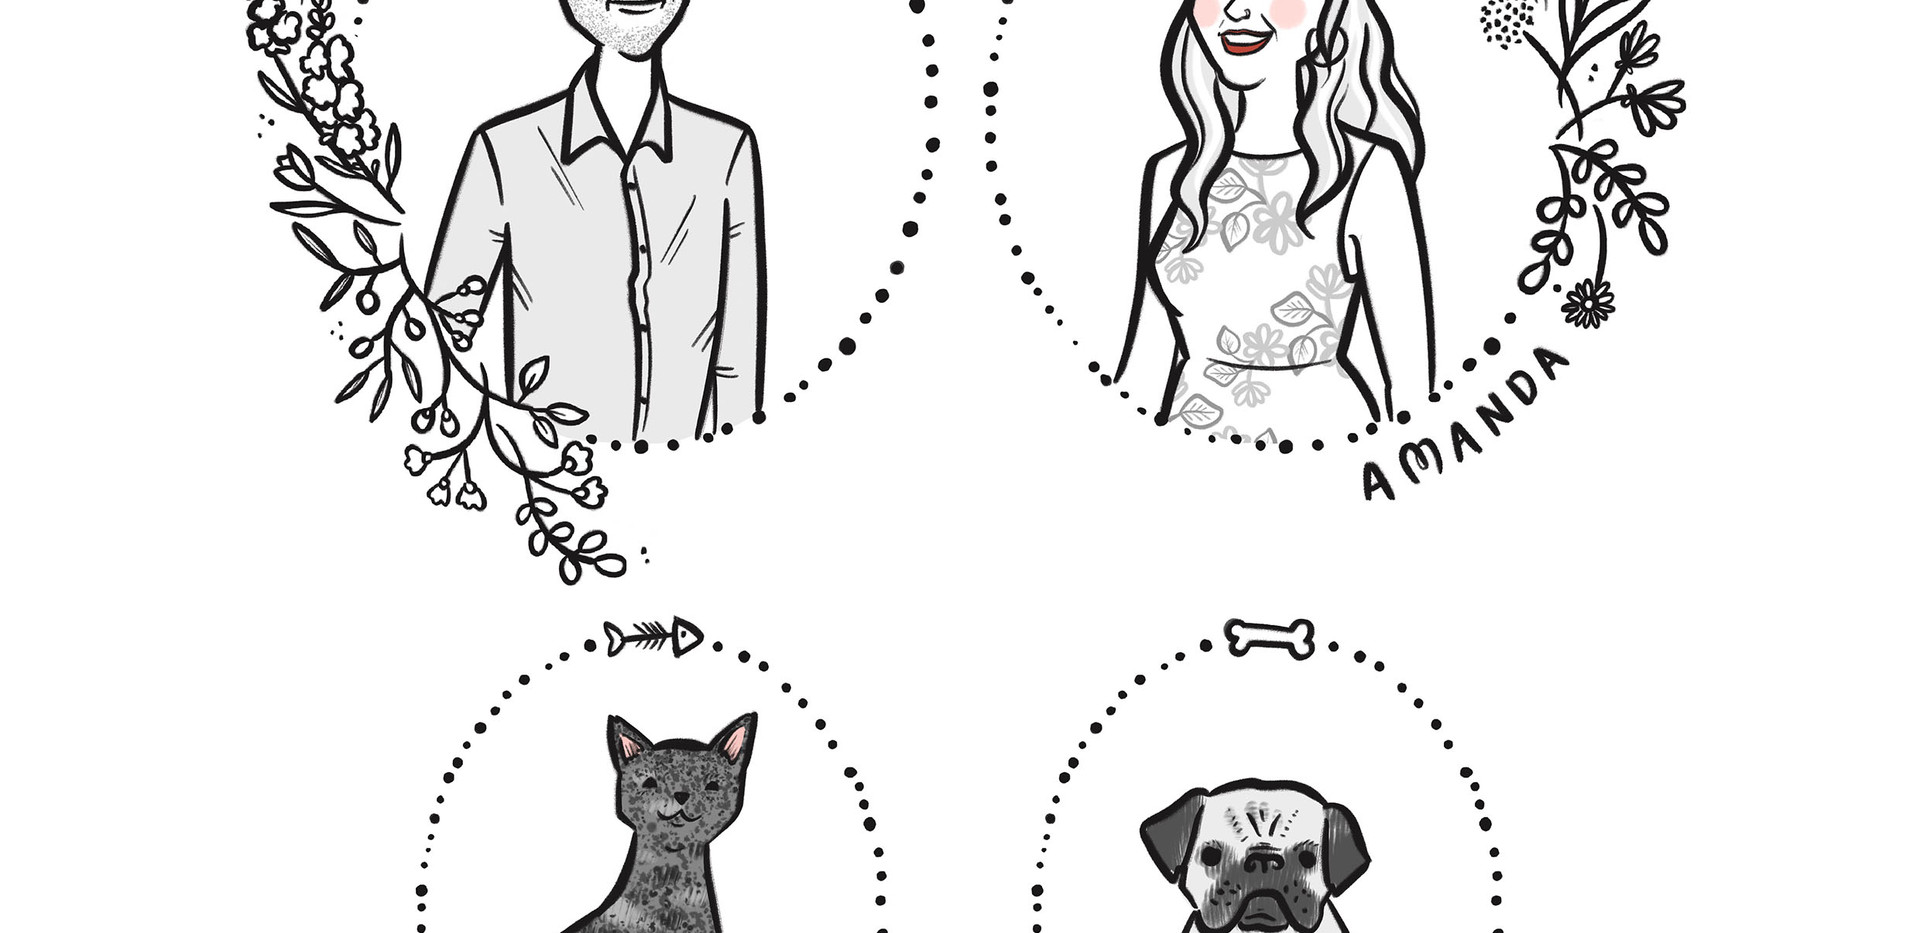 bw couple portrait cat dog.jpg